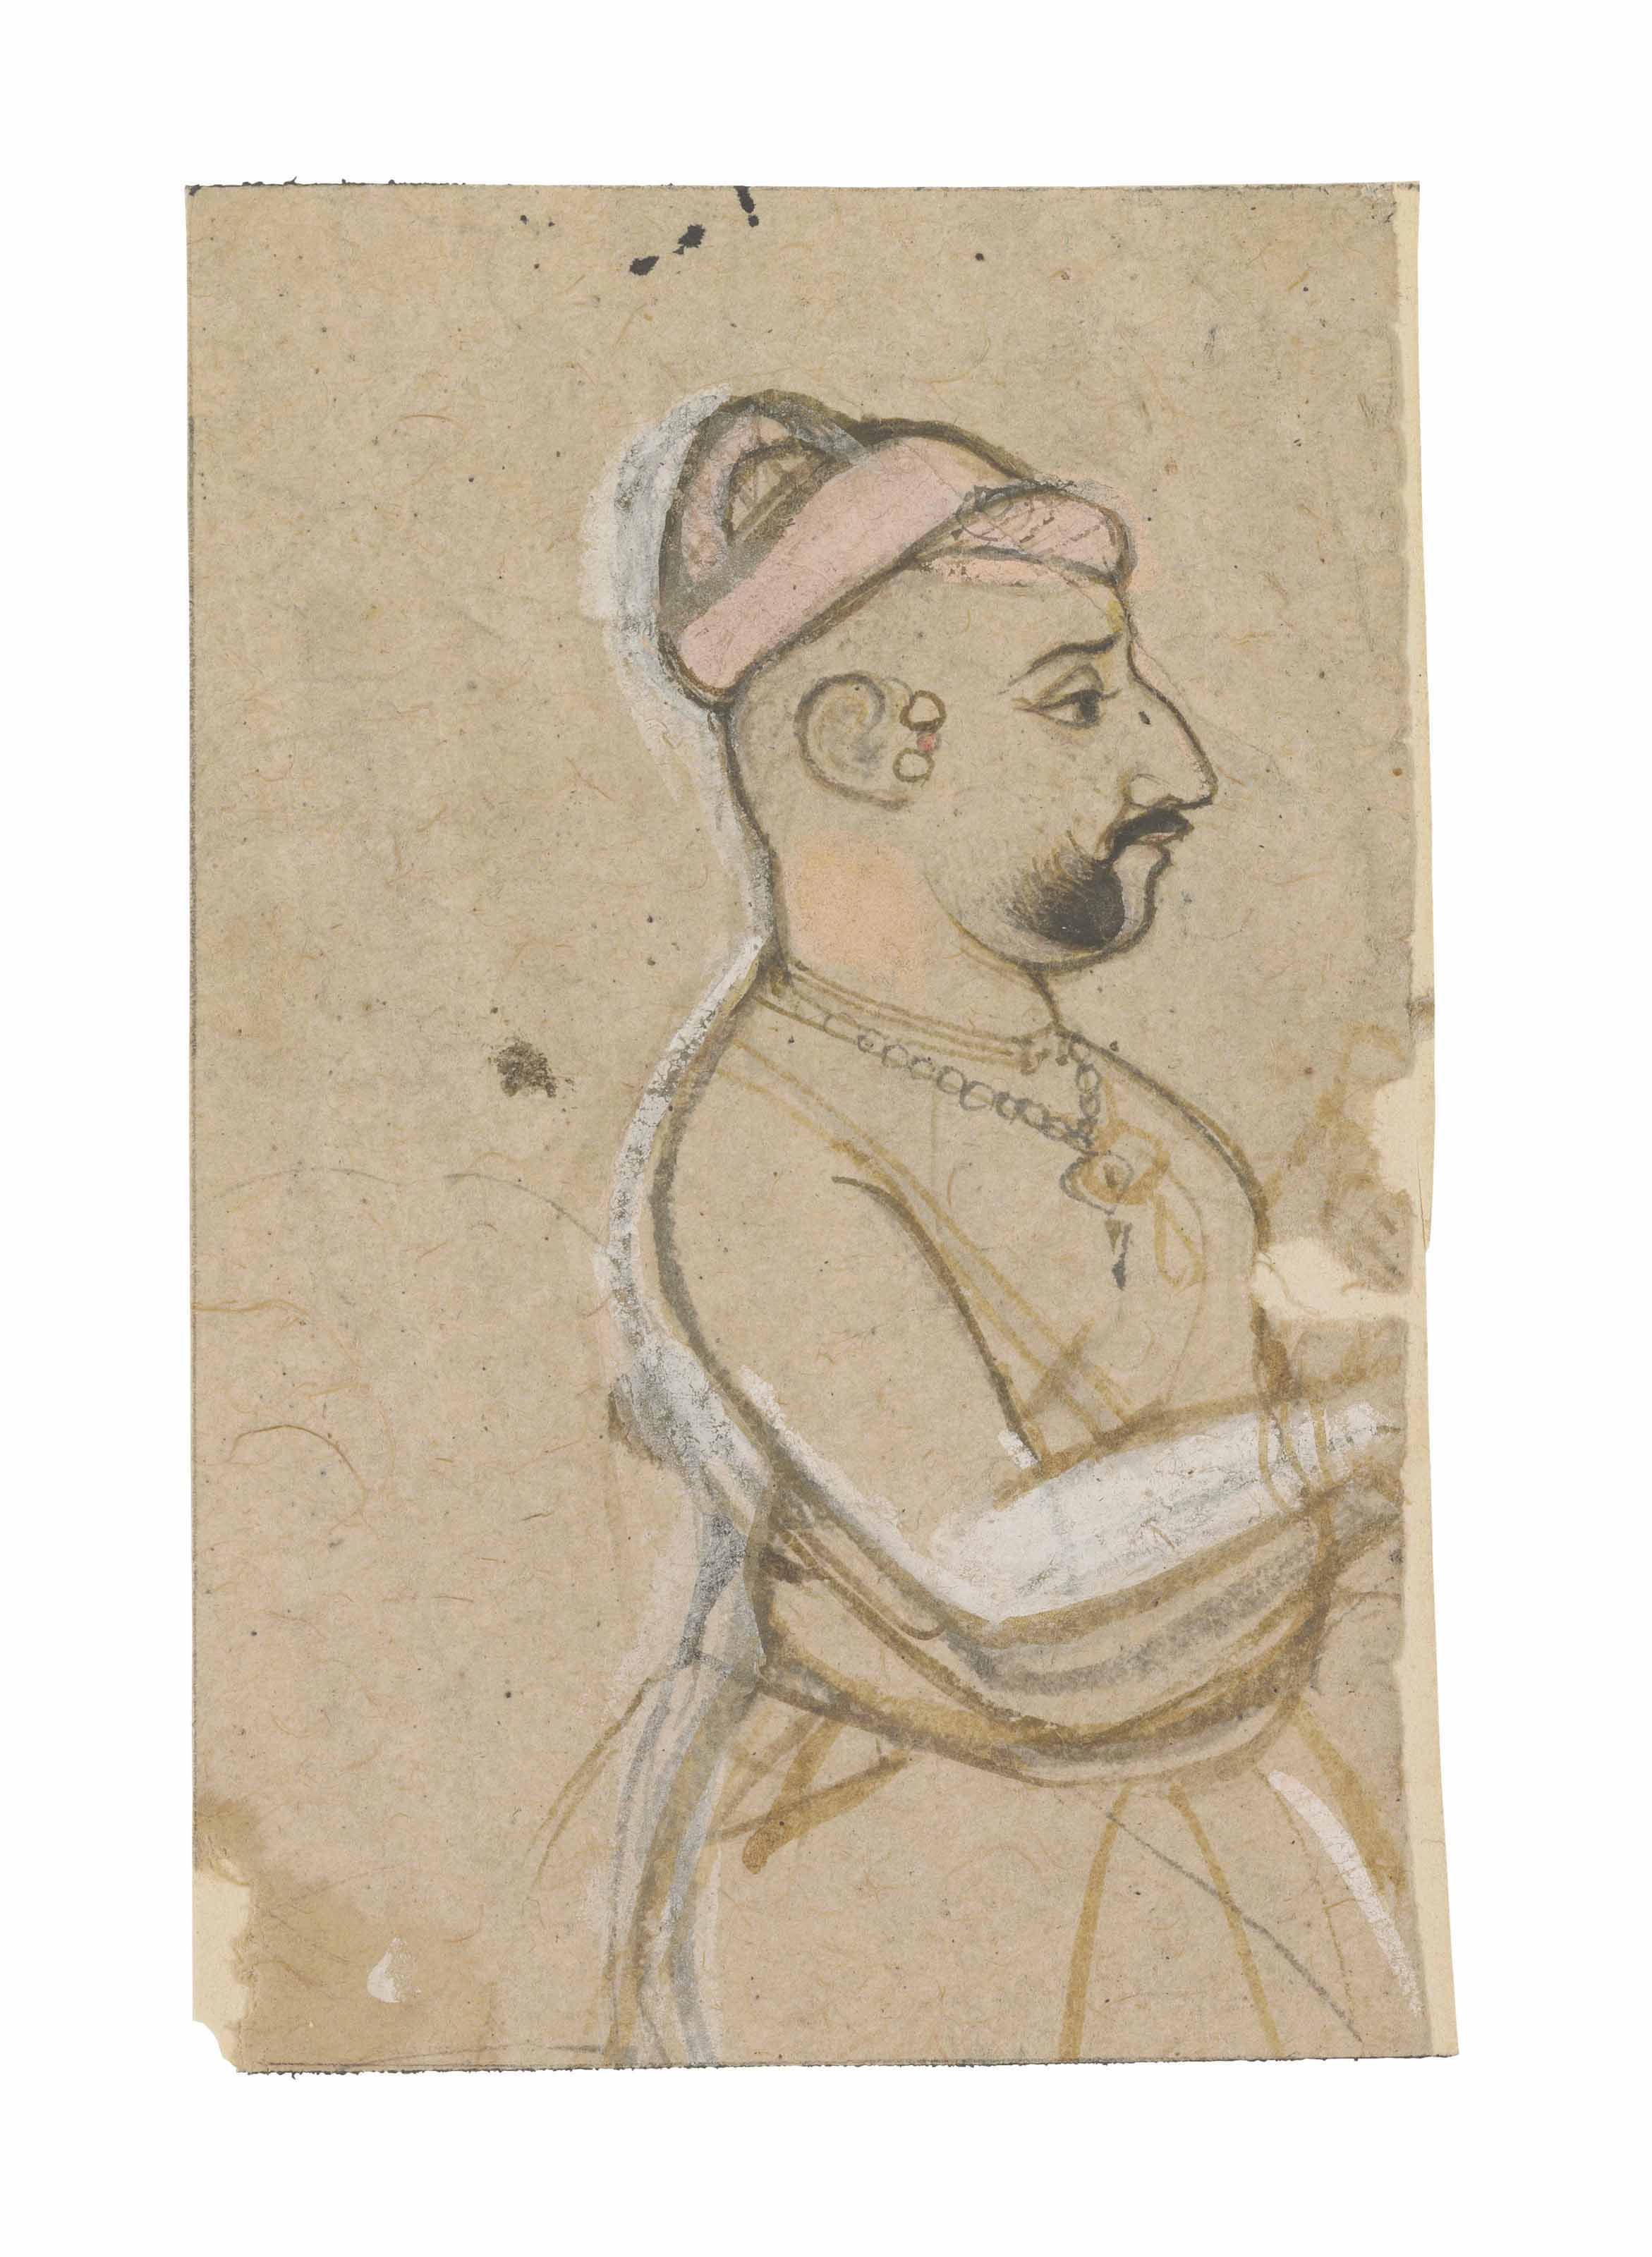 A drawing of a nobleman